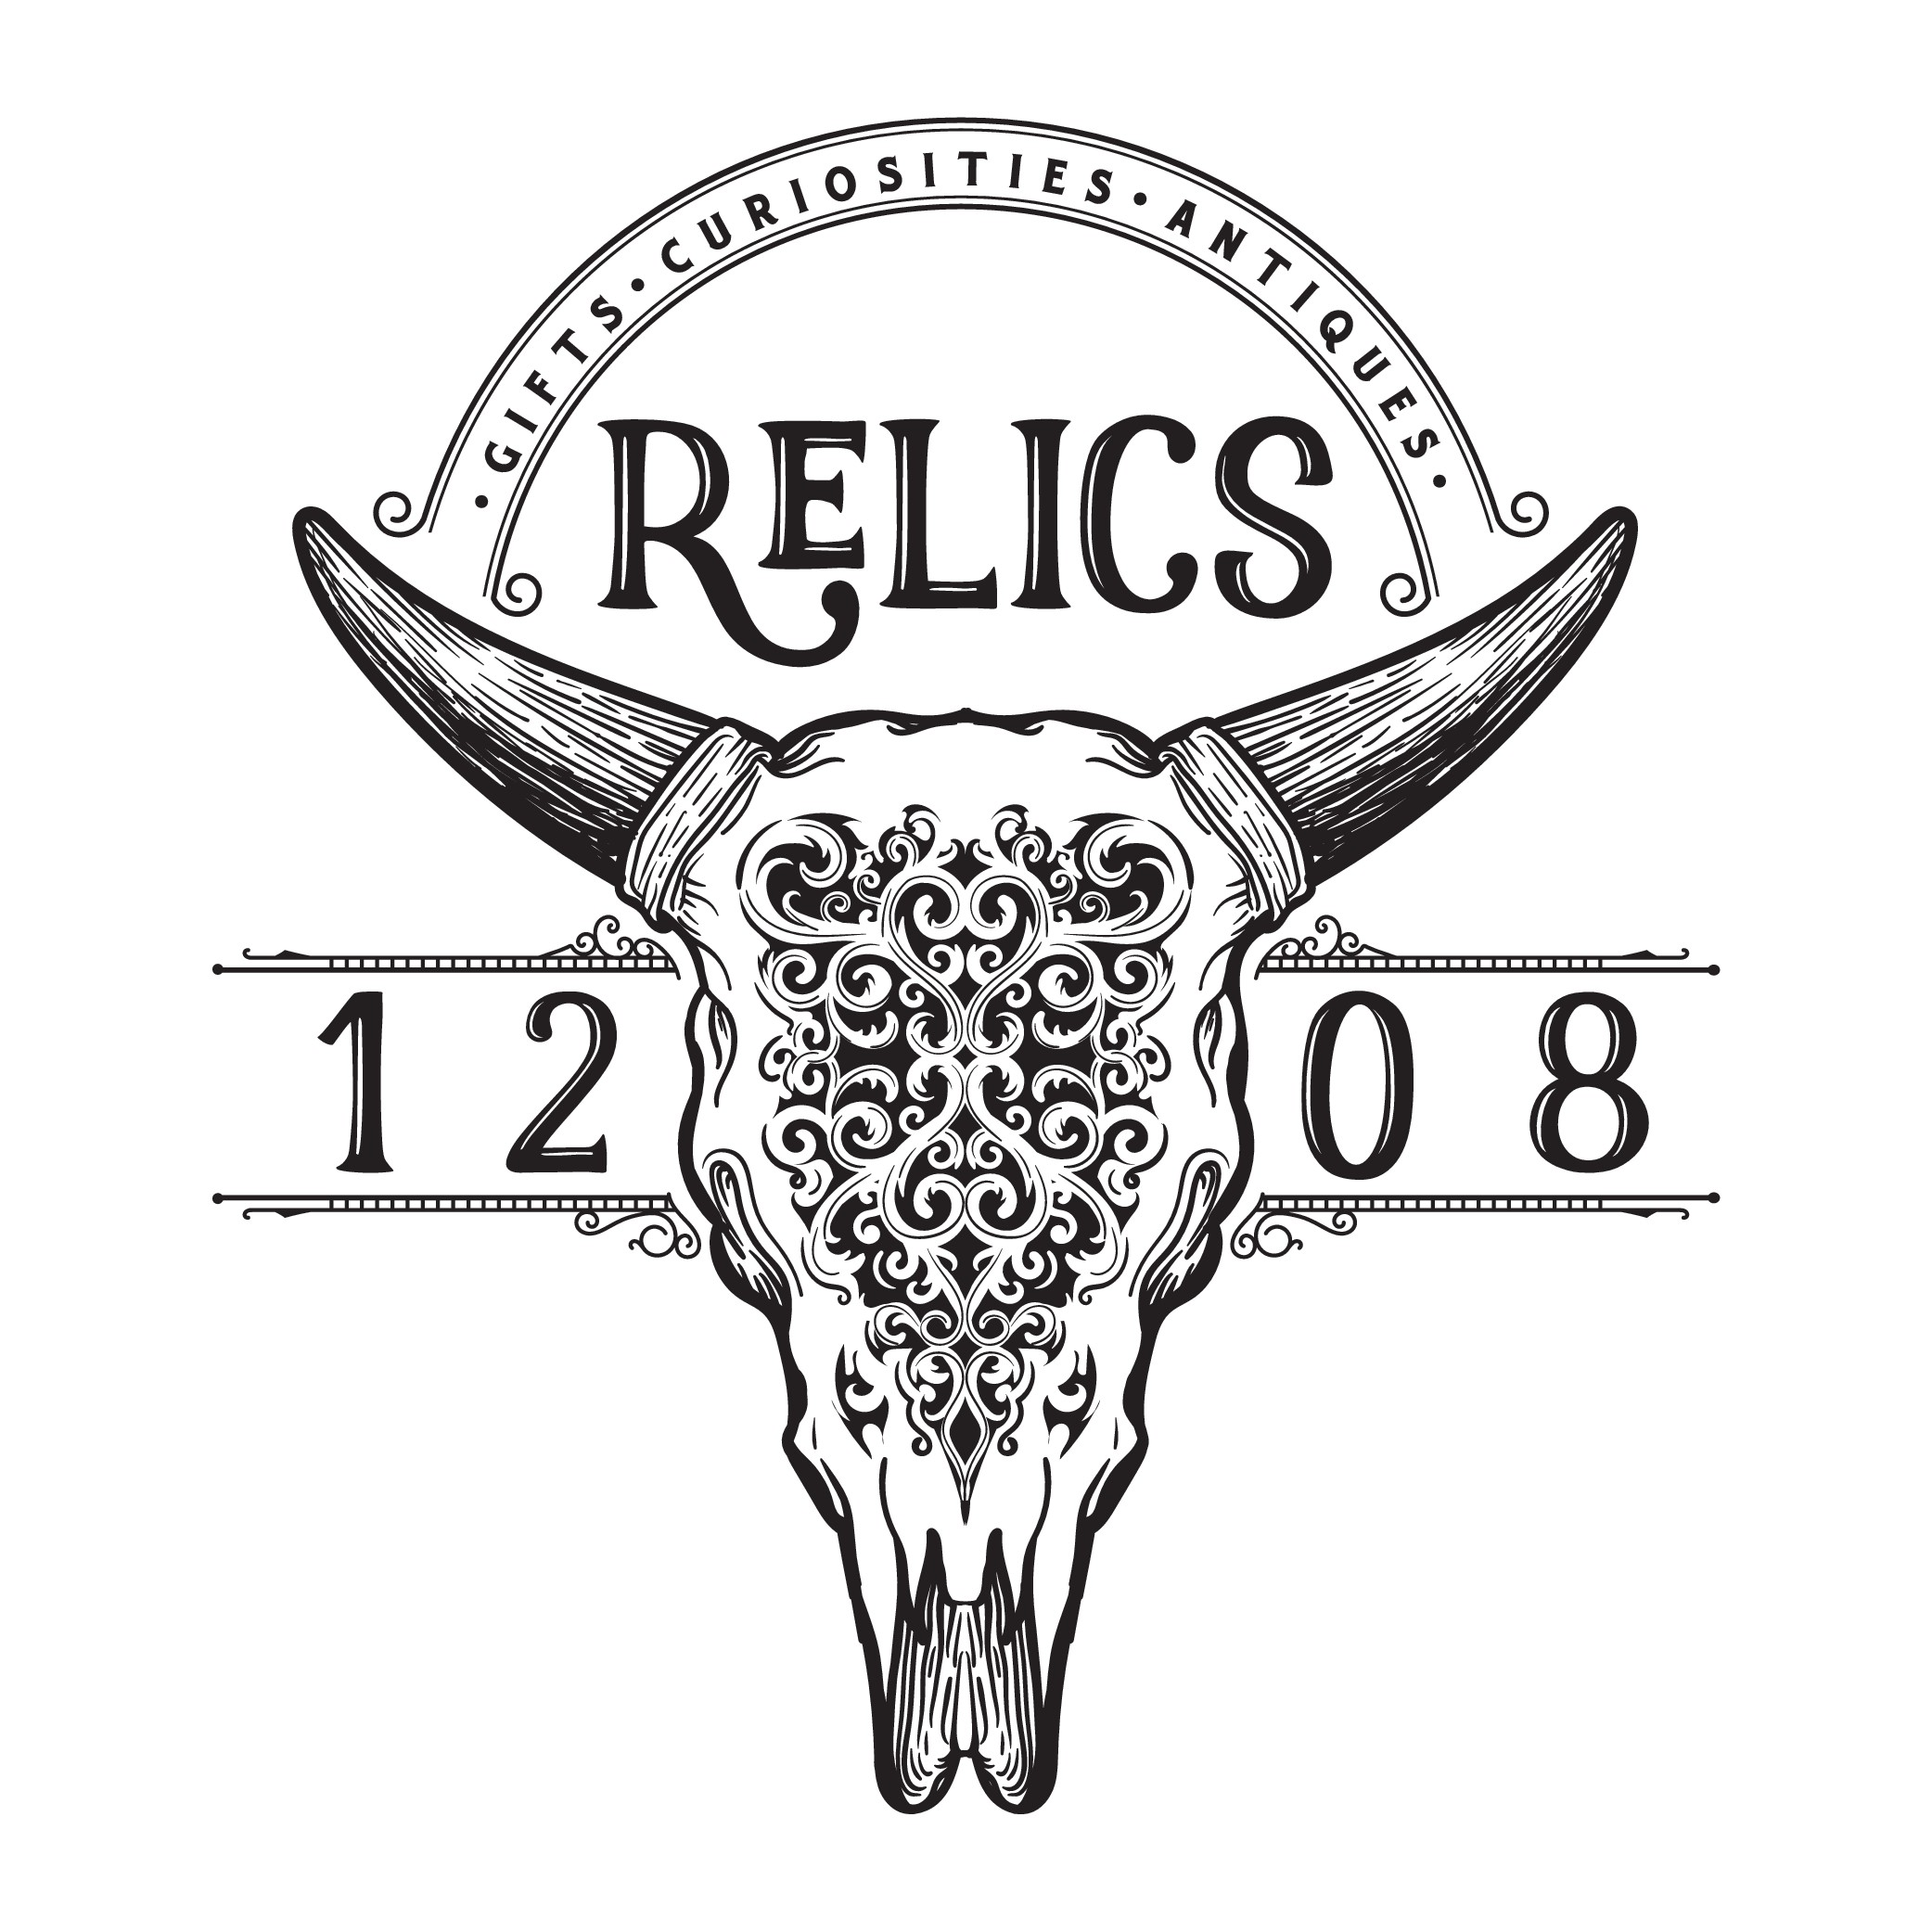 Carved Cow Skull logo for Gift & Curiosities Shop